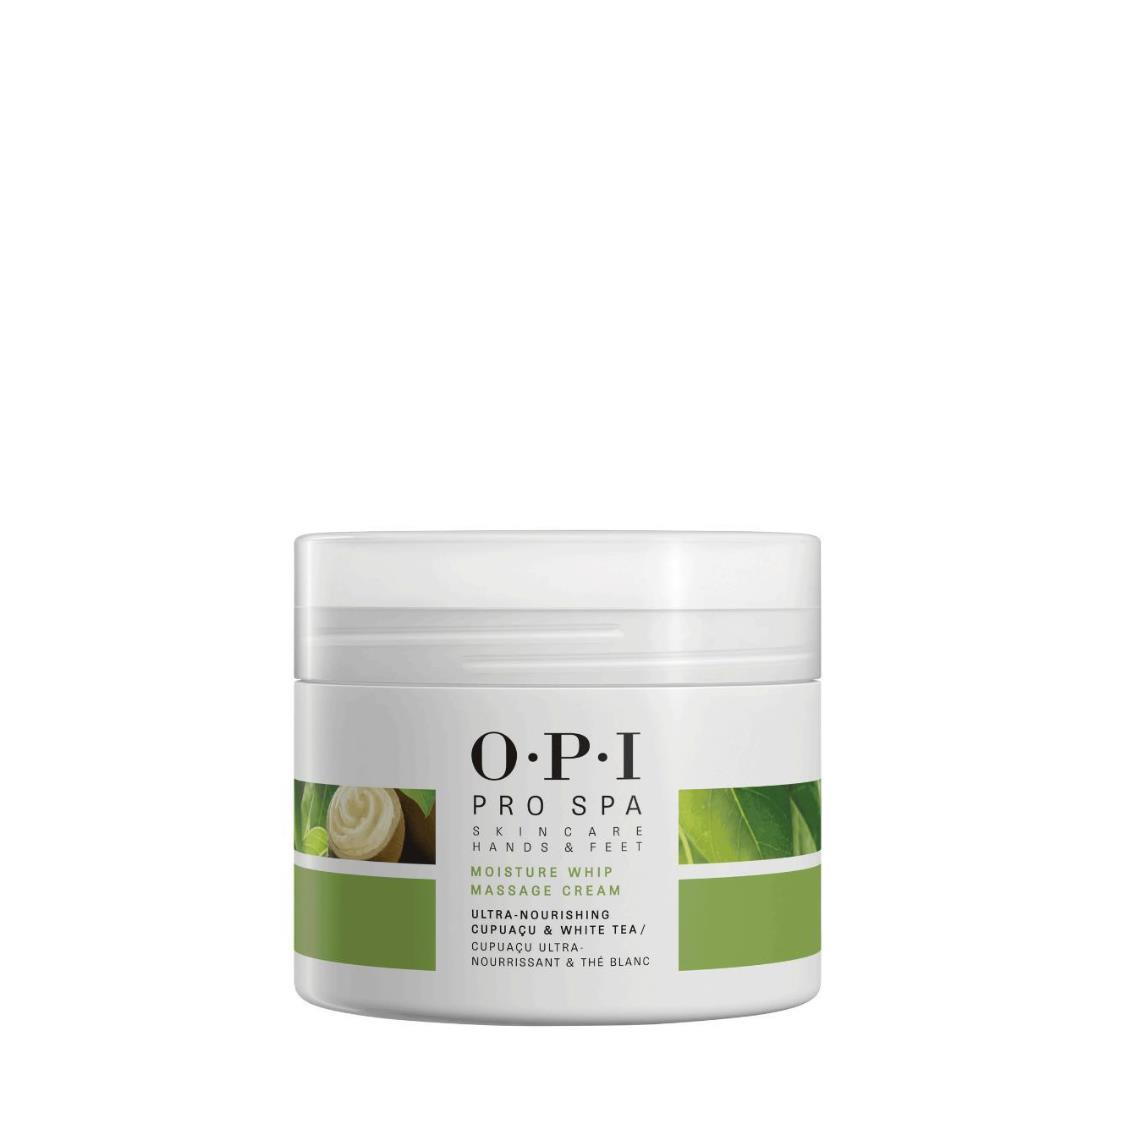 Opi Prospa Moisture Whip Massage Cream 236ml